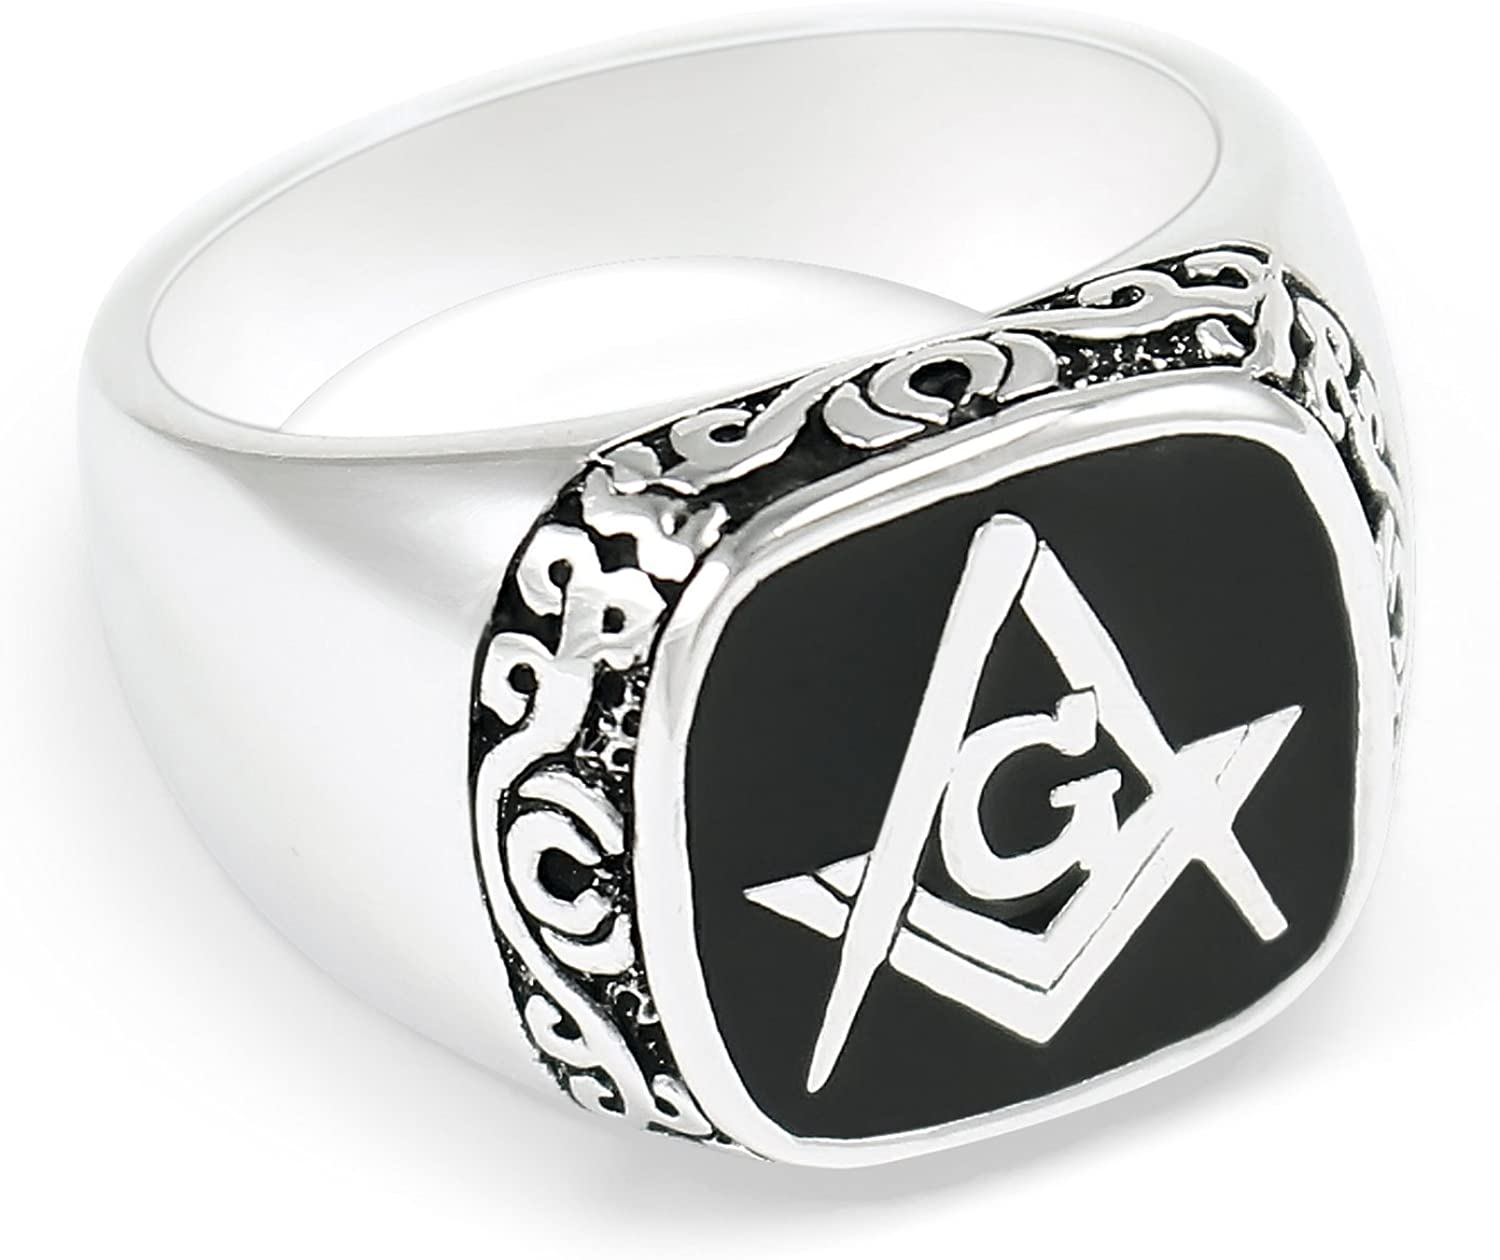 Masonic Sterling Silver Ring with Black Square /& CompassFreemasonry Gifts